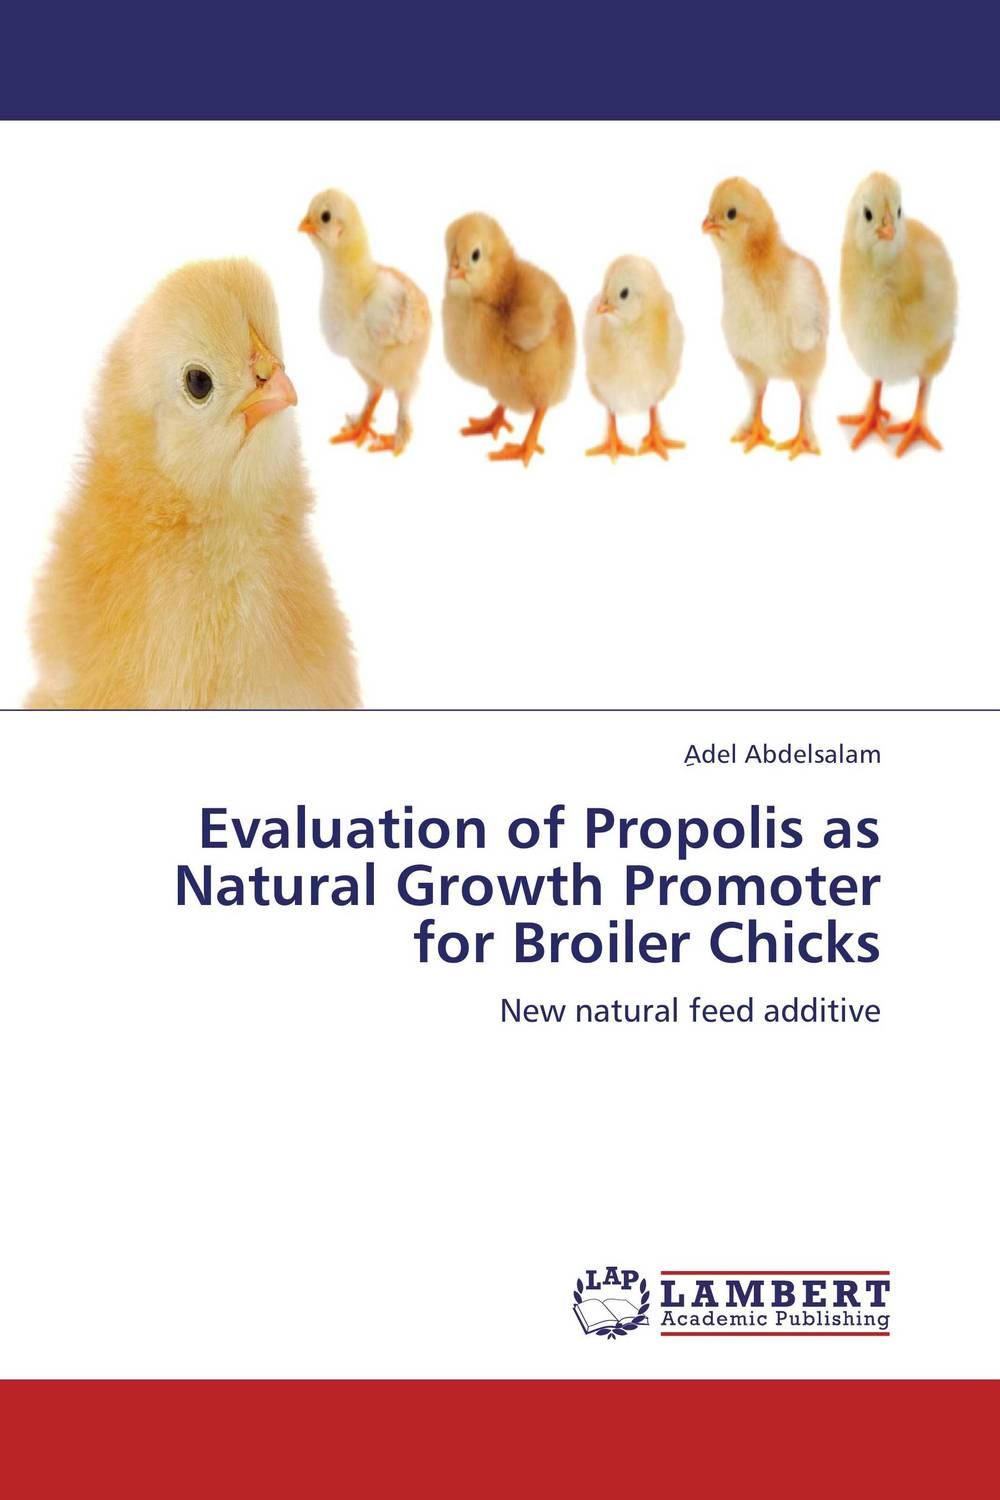 Evaluation of Propolis as Natural Growth Promoter for Broiler Chicks analysis of tp53 and promoter hypermethylation of mgmt in lung cancer